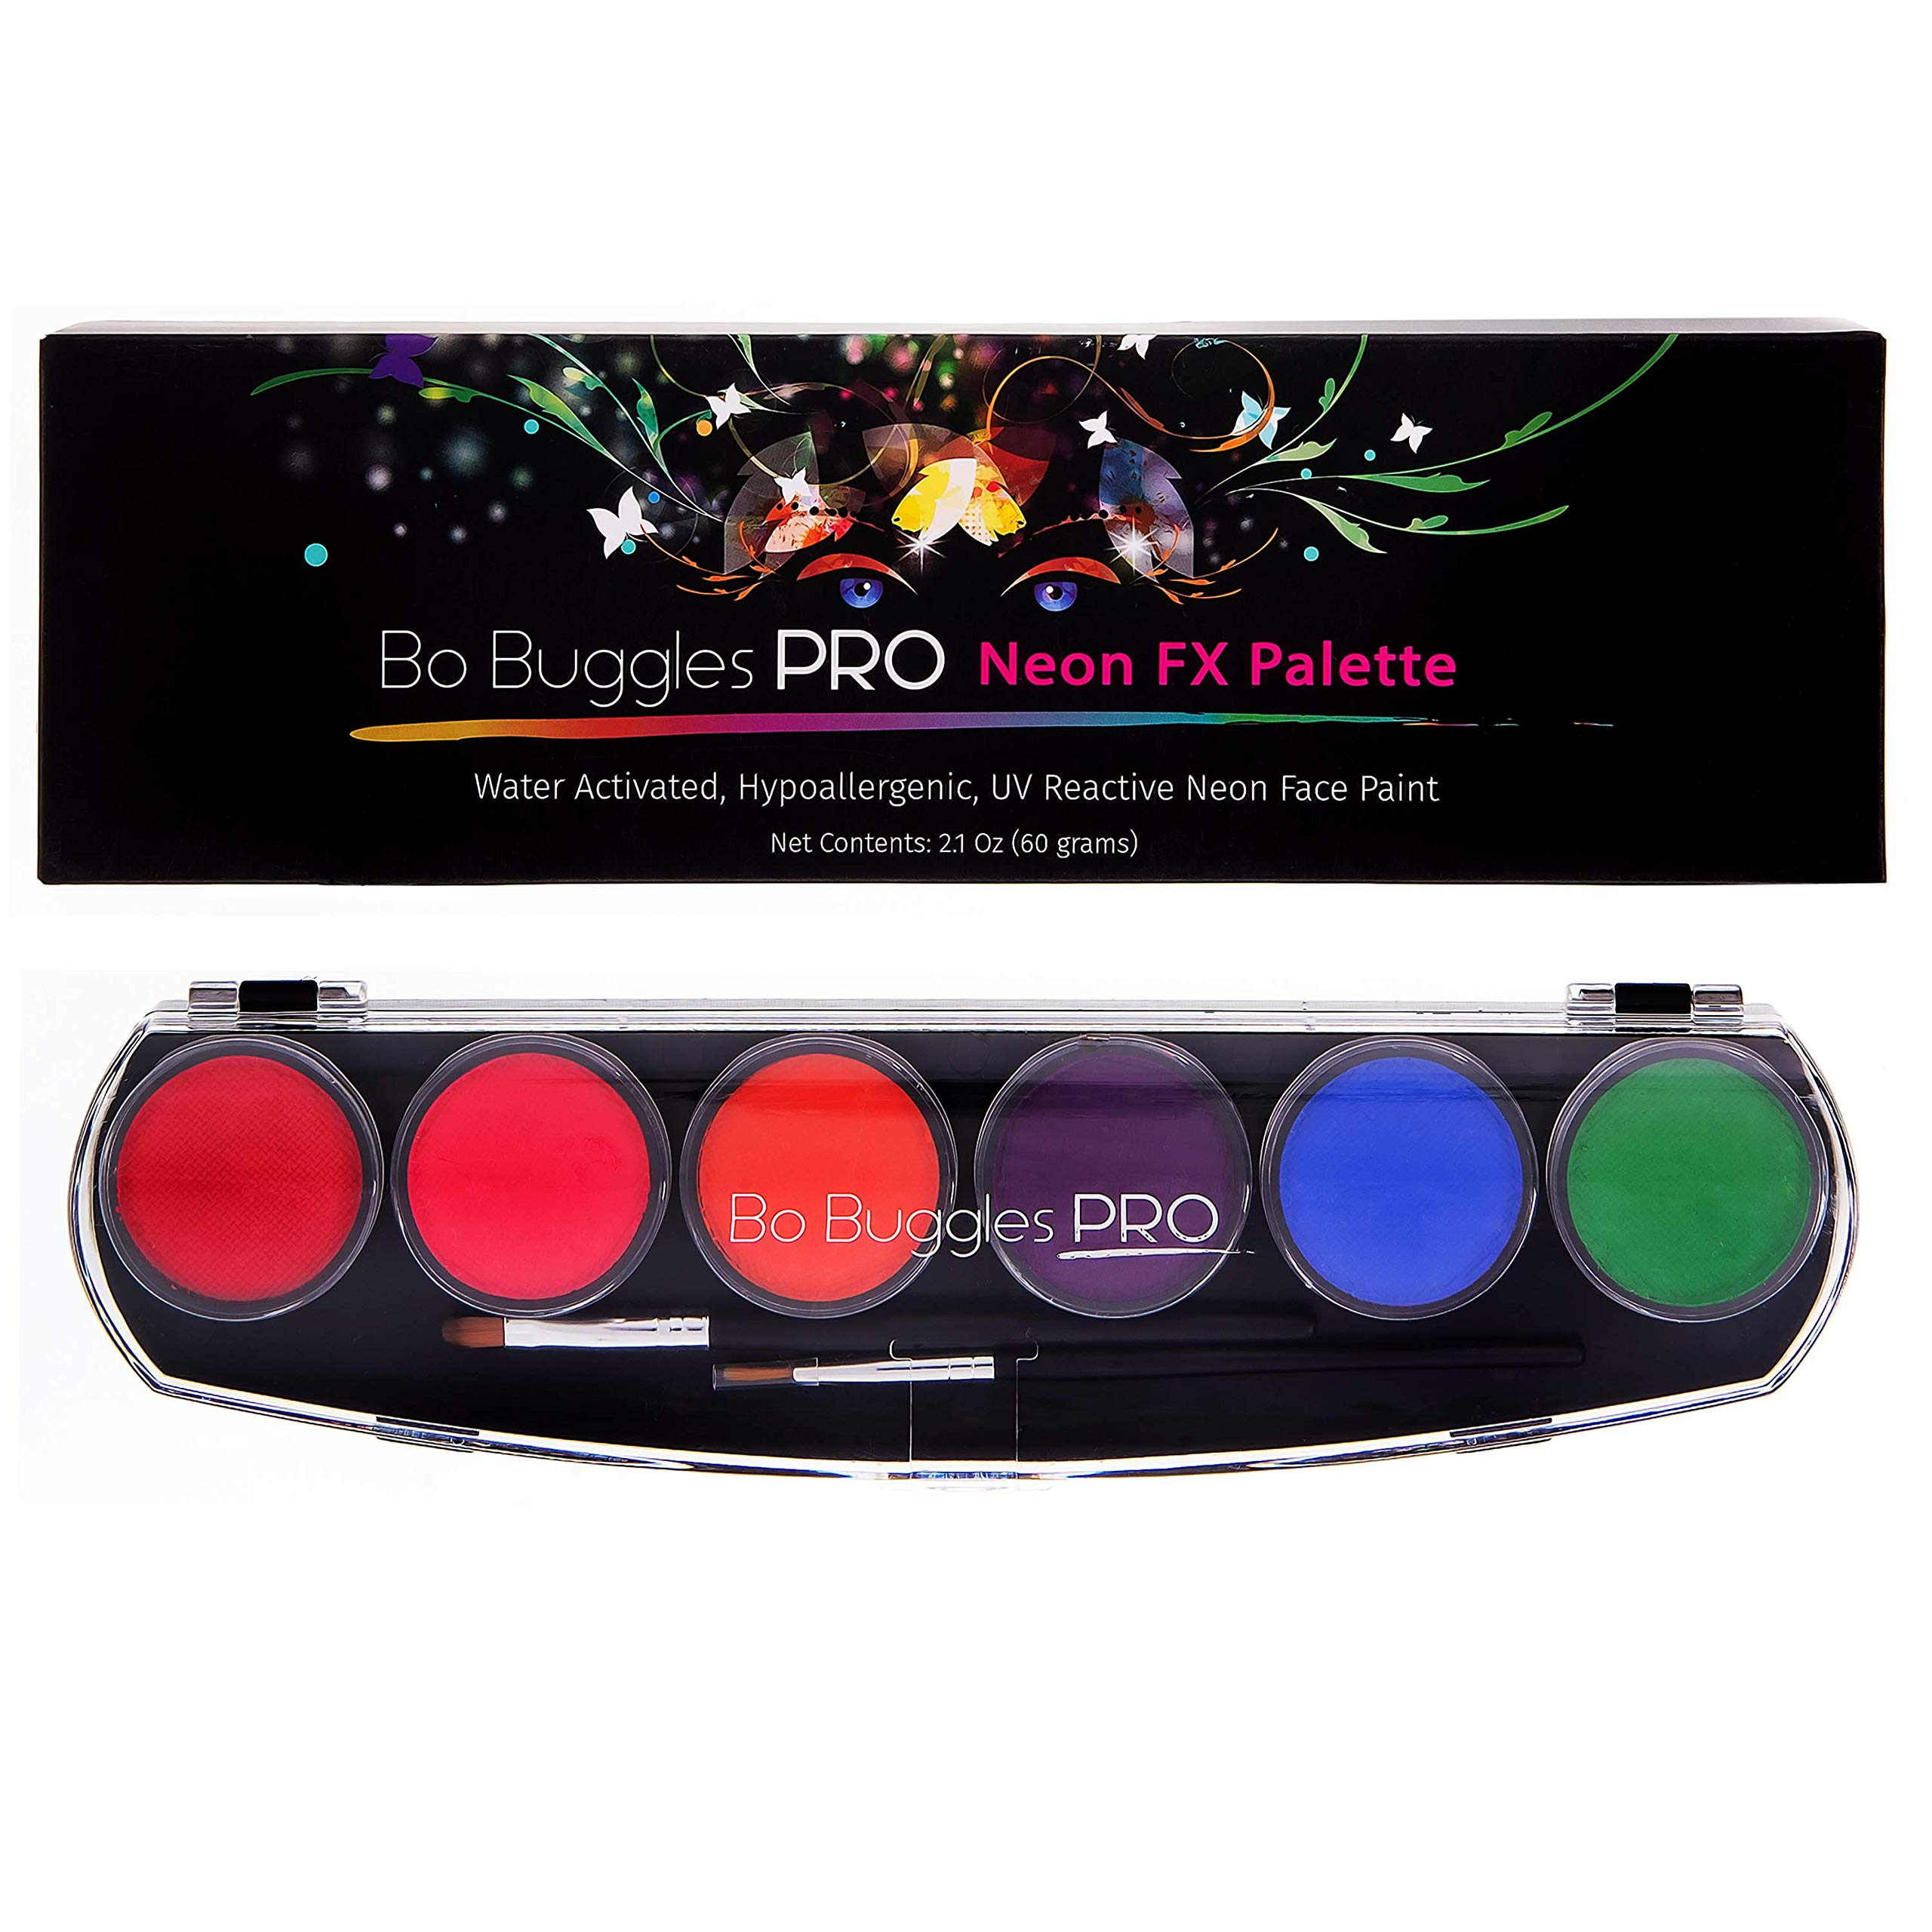 Bo Buggles Professional Neon FX Face Paint Kit UV Reactive Face Painting Palette. Water-Activated Loved by Pro Painters for Vibrant Detailed Designs. 6x10 Gram Paints +2 Brushes. Safe Quality Makeup